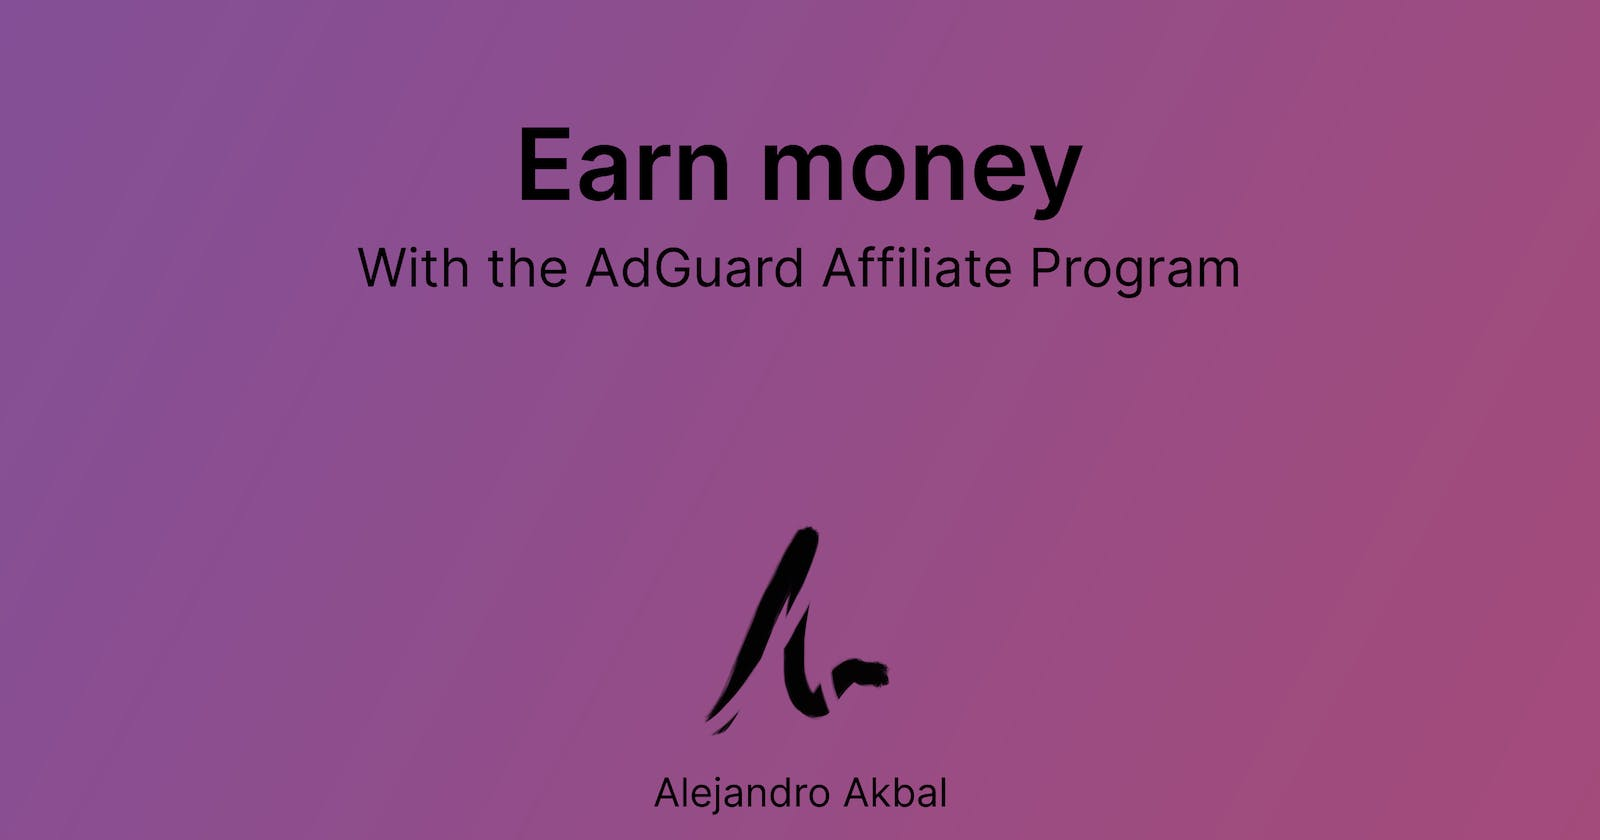 Earn money with the AdGuard Affiliate Program